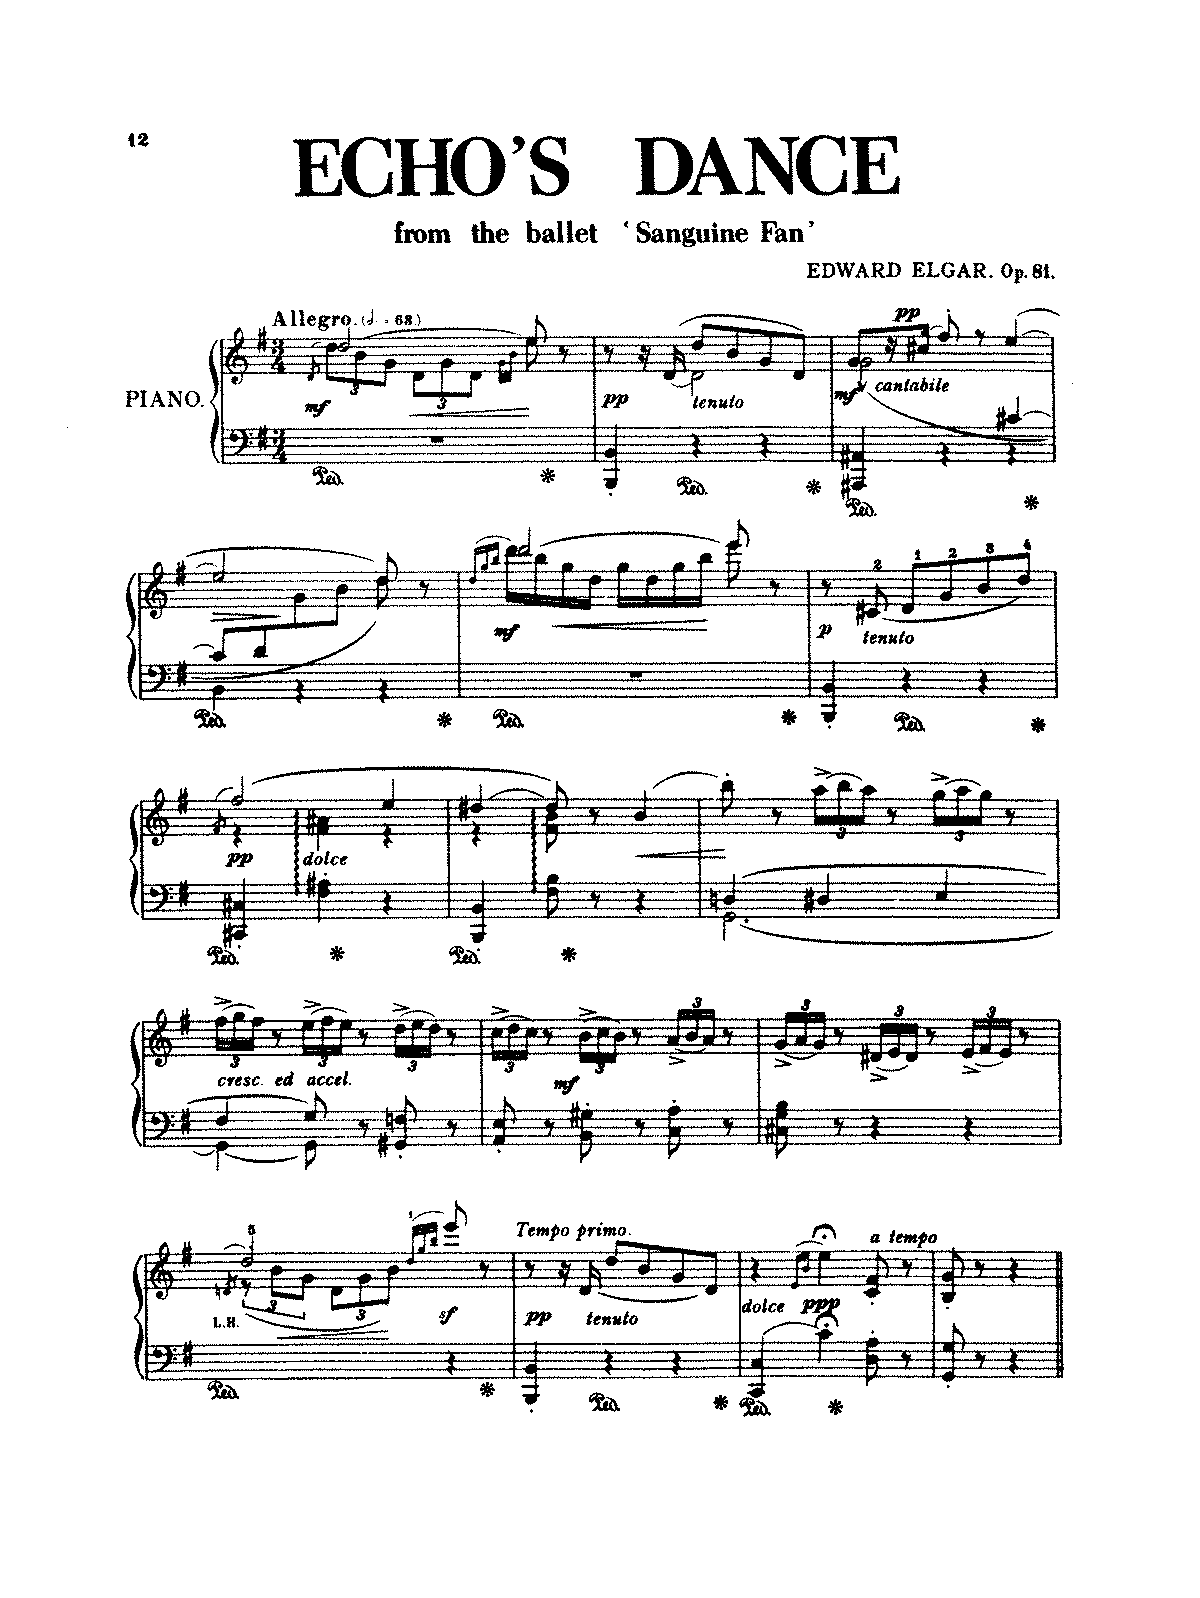 PMLP117891-Elgar - The Sanguine Fan, Op.81 - Echo's Dance (trans. Elgar - piano).pdf